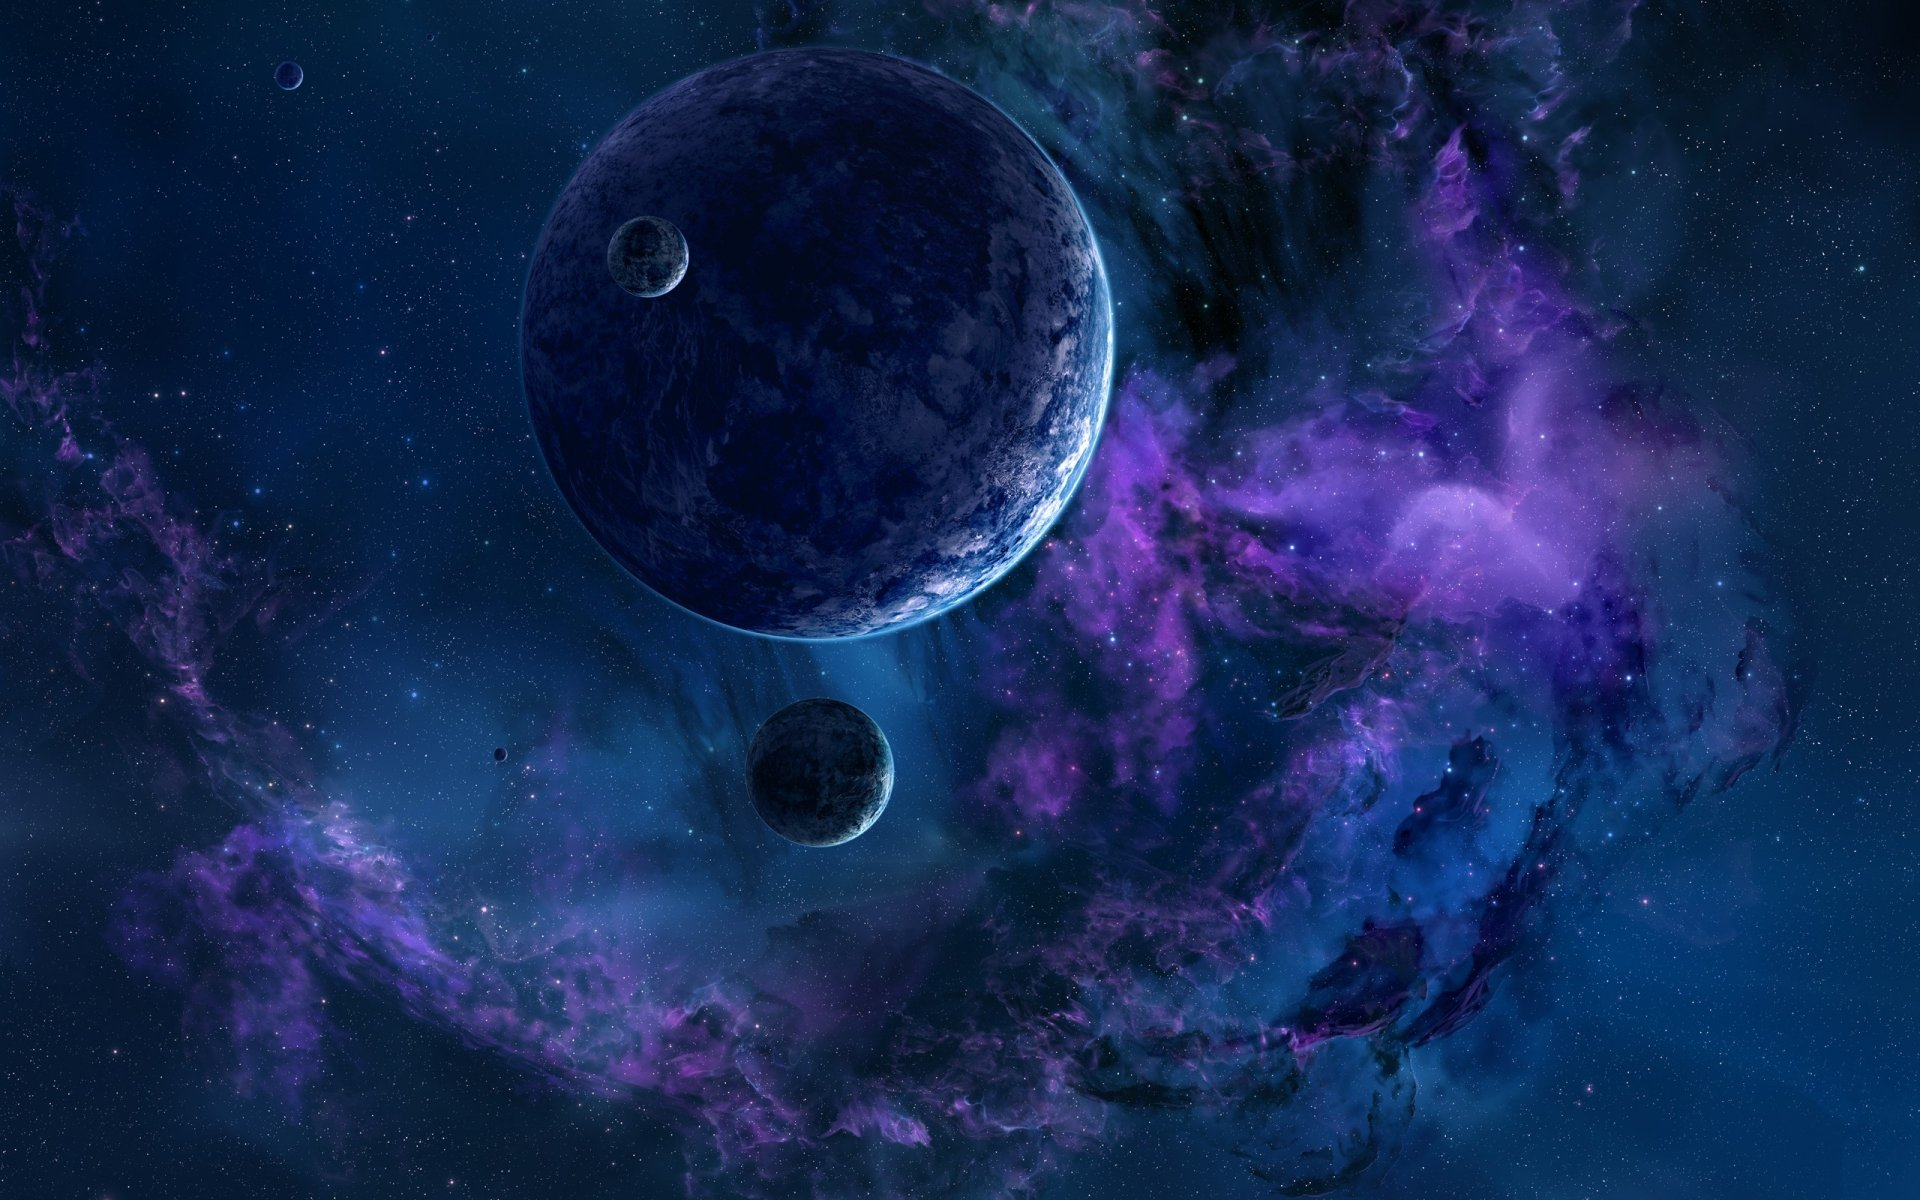 Space Planets Nebula Blue Lila wallpapers | Space Planets ...